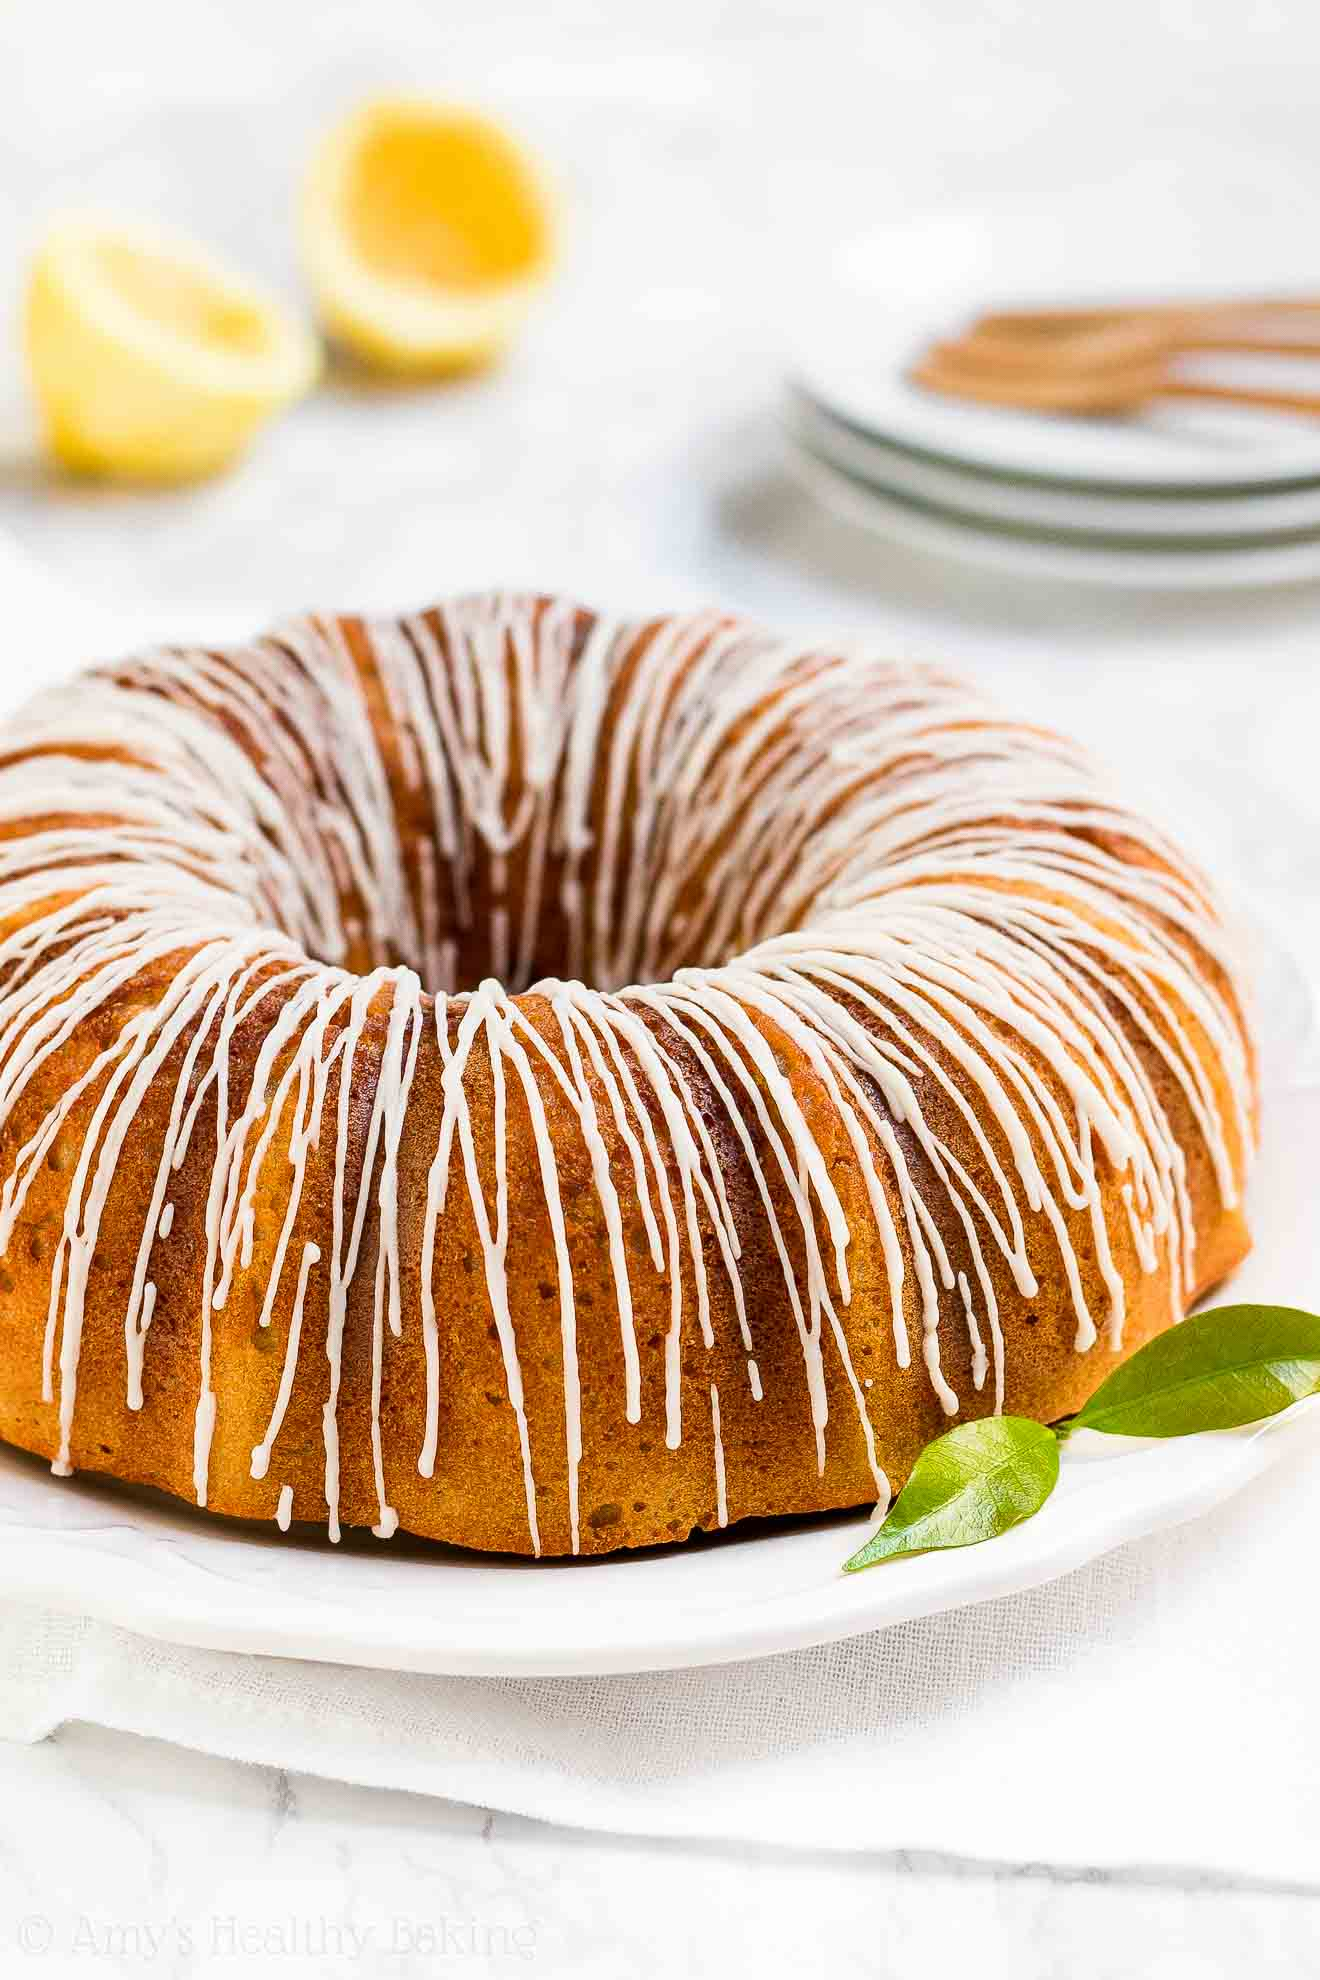 Difference Between Bundt Cake And Regular Cake